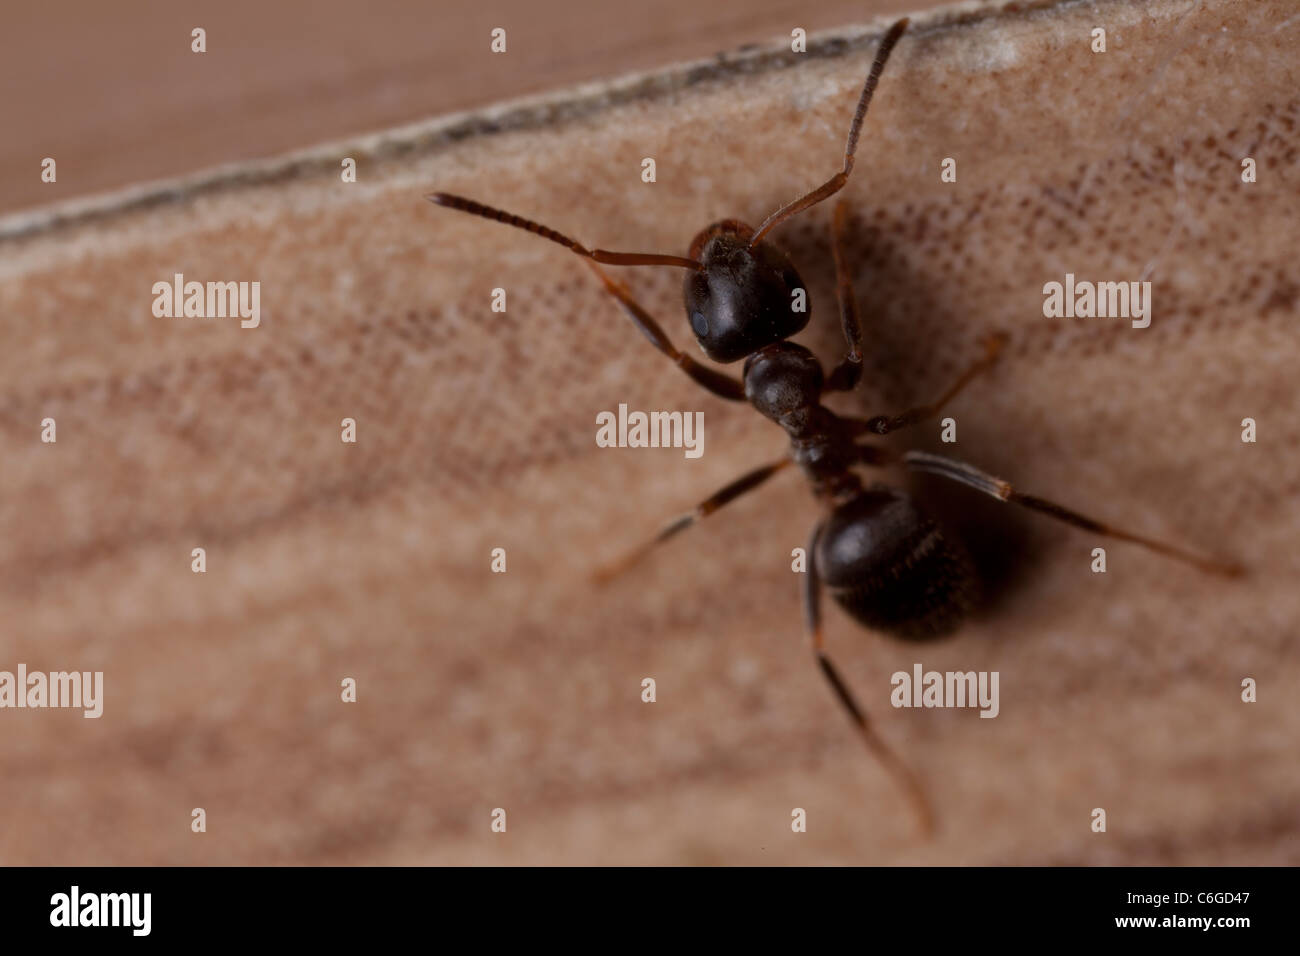 Tiny Black Mites In Bedroom Stylish Bedroom Decorating Ideas Small  Small Round  Brown Bugs In. Tiny Brown Ants   getpaidforphotos com